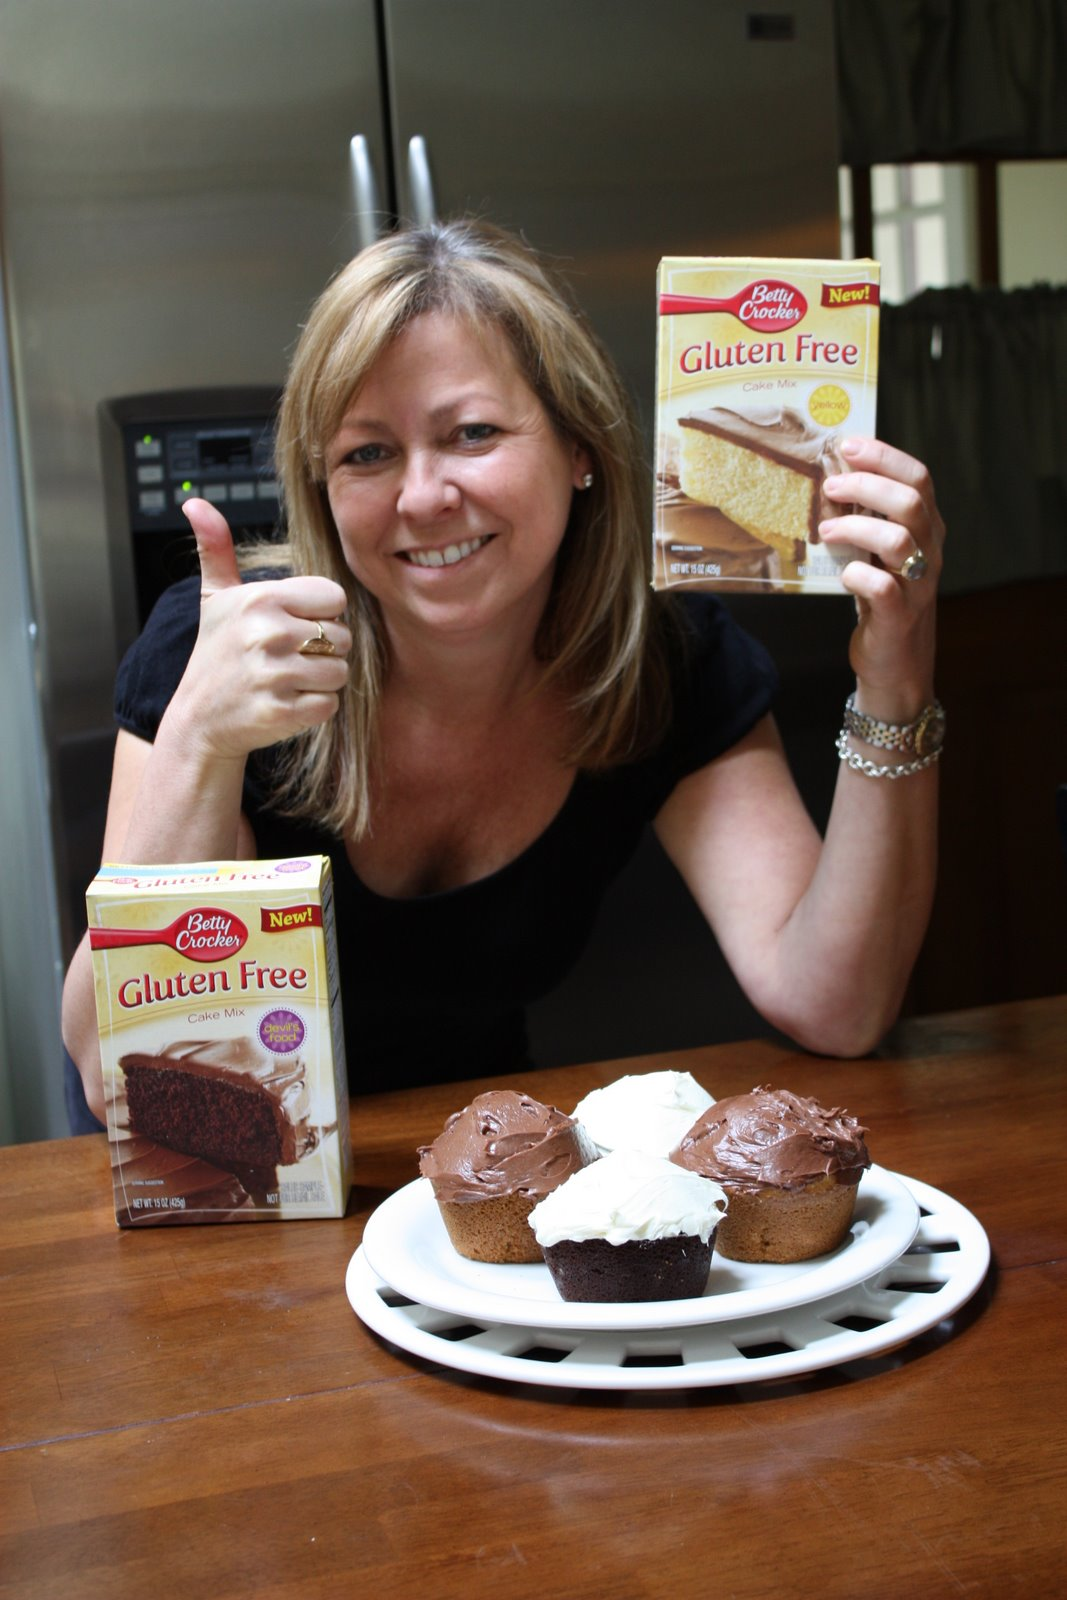 Betty Crocker Soy Free Cake Mix